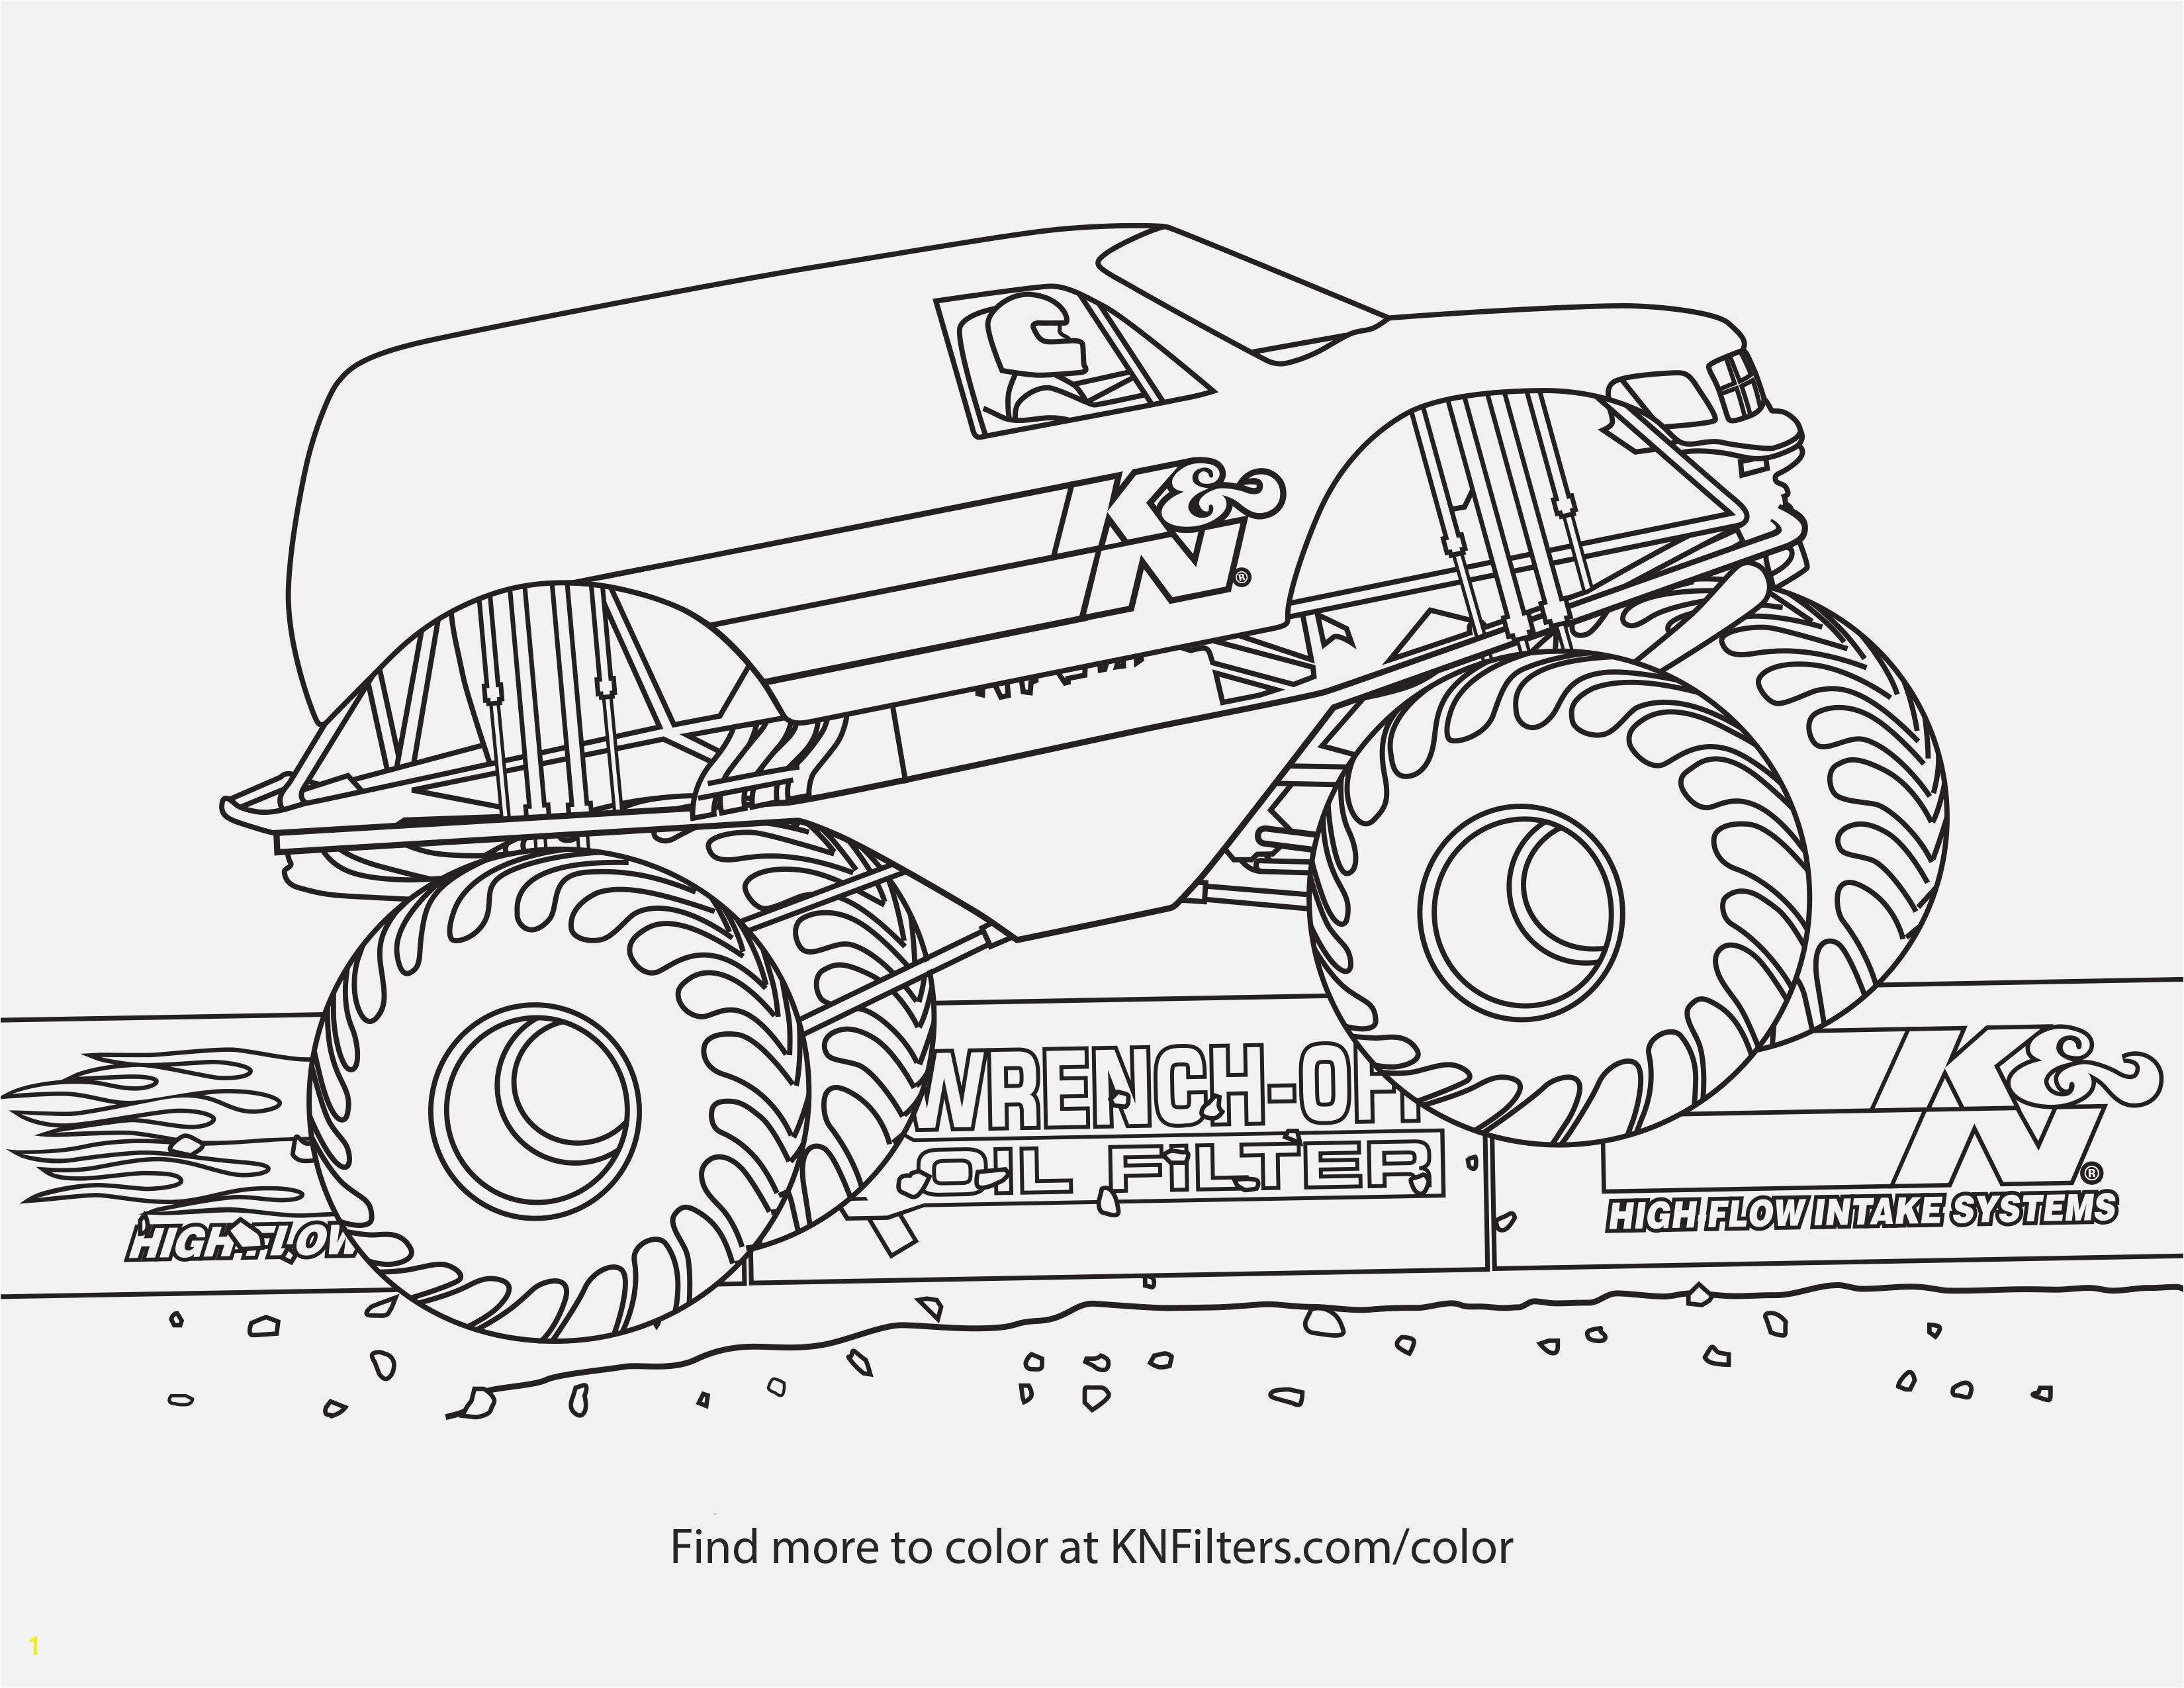 Coloring Pages Monster Trucks Easy and Fun Monster Truck Coloring Pages for Kids K&n Printable Coloring Pages